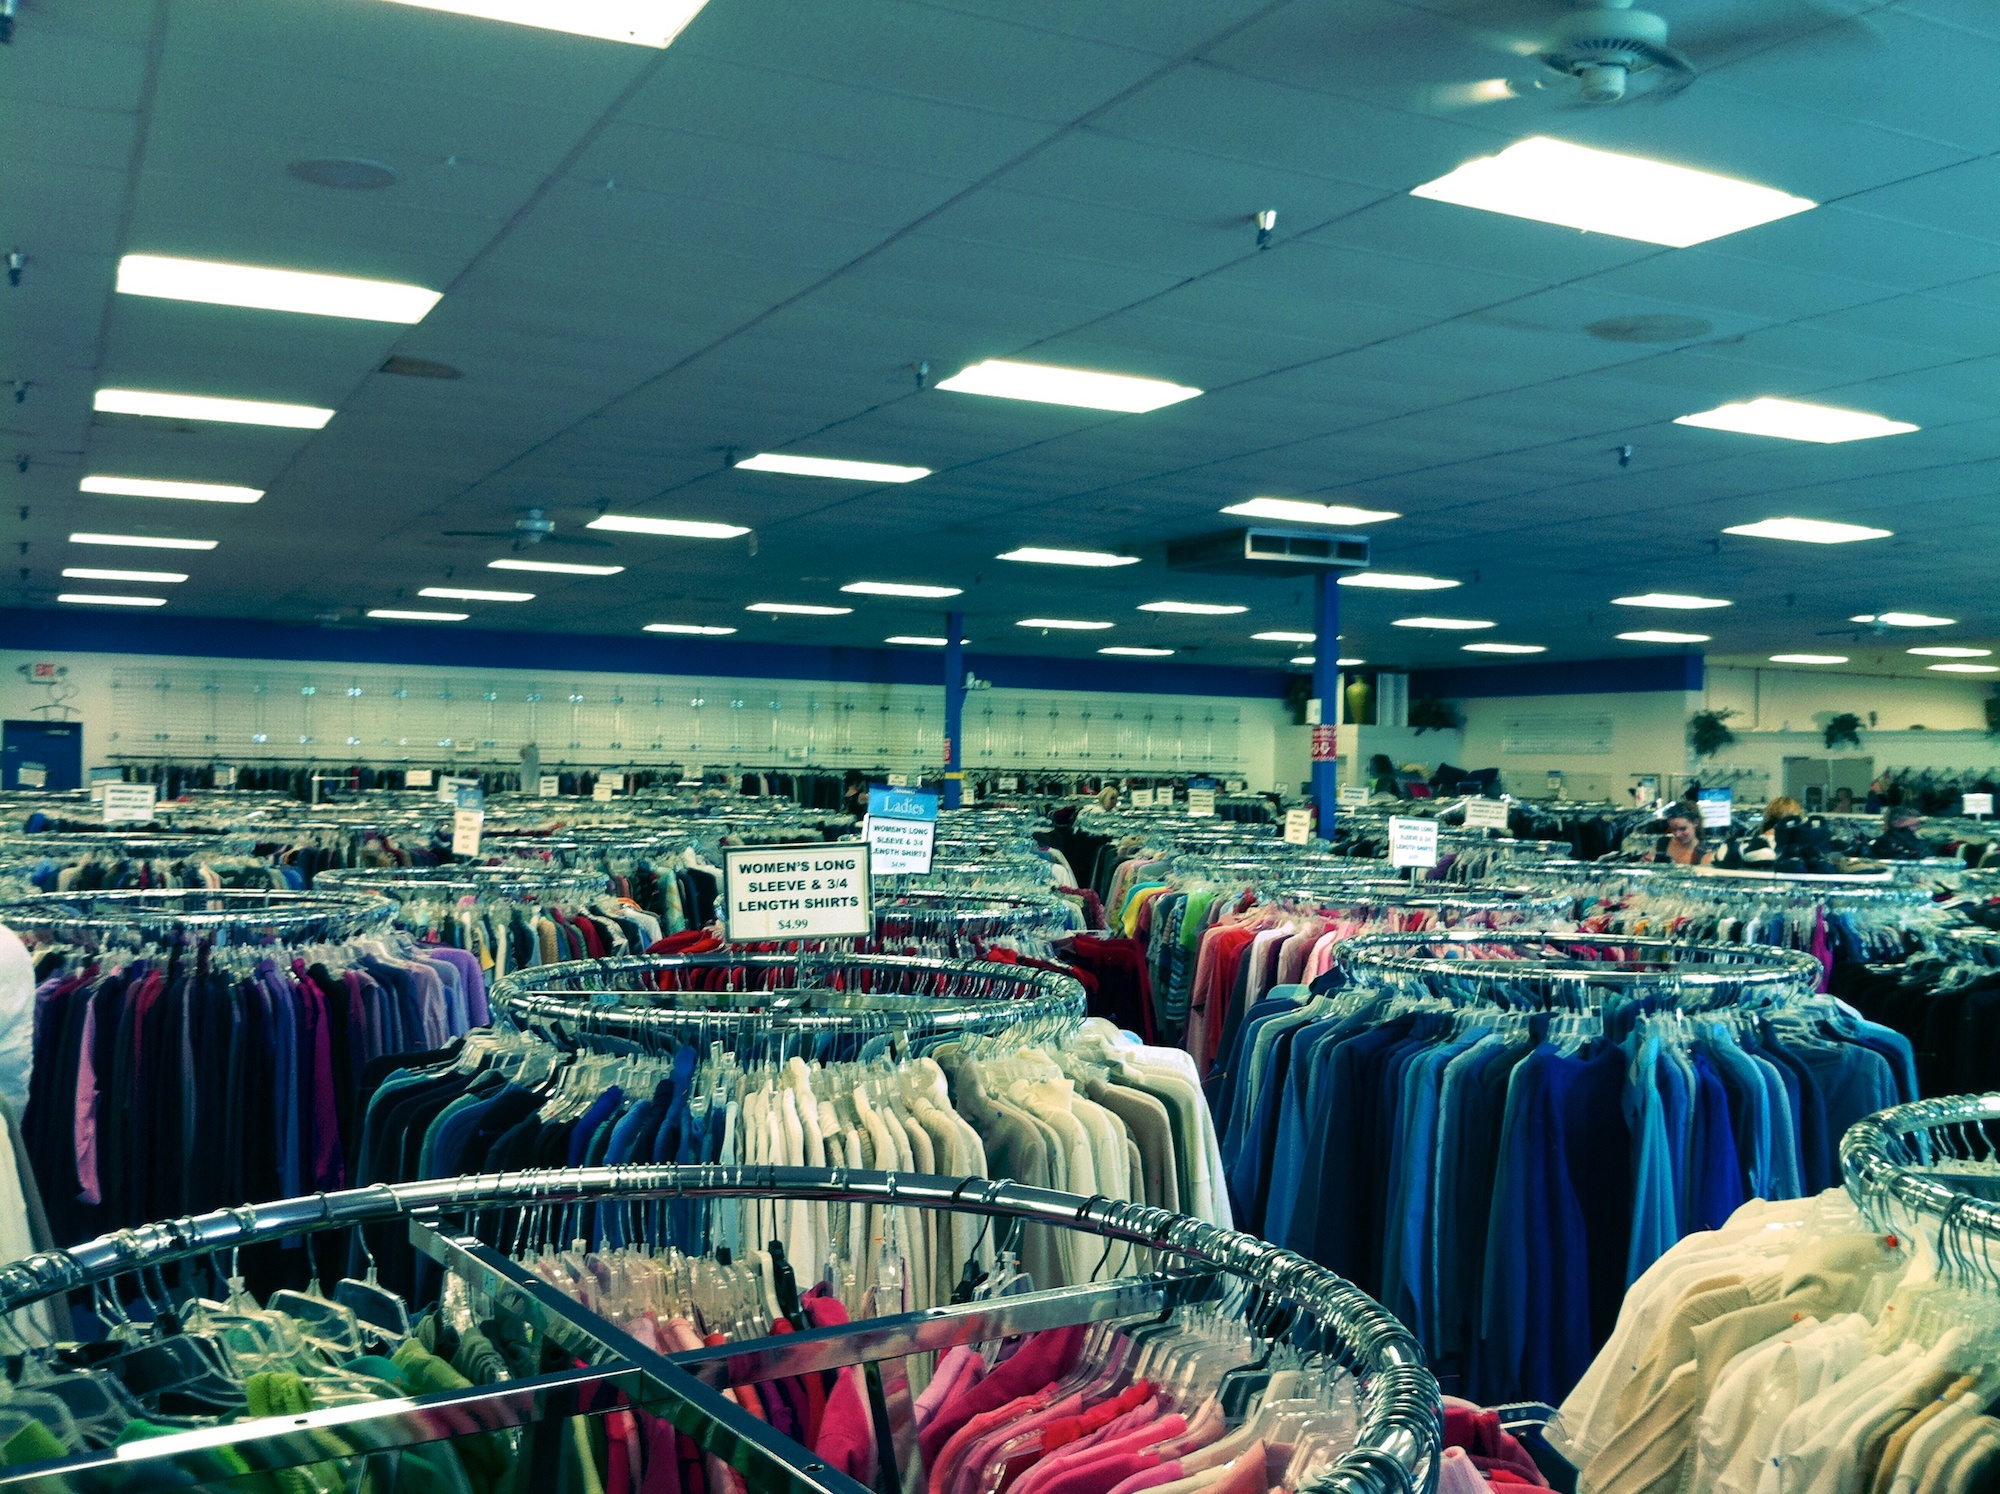 If you've never experienced the thrill that is thrift shopping here's the 'how too' on the best way to thrift and find the best stuff every time. (Brad K./Flickr via Creative Common)